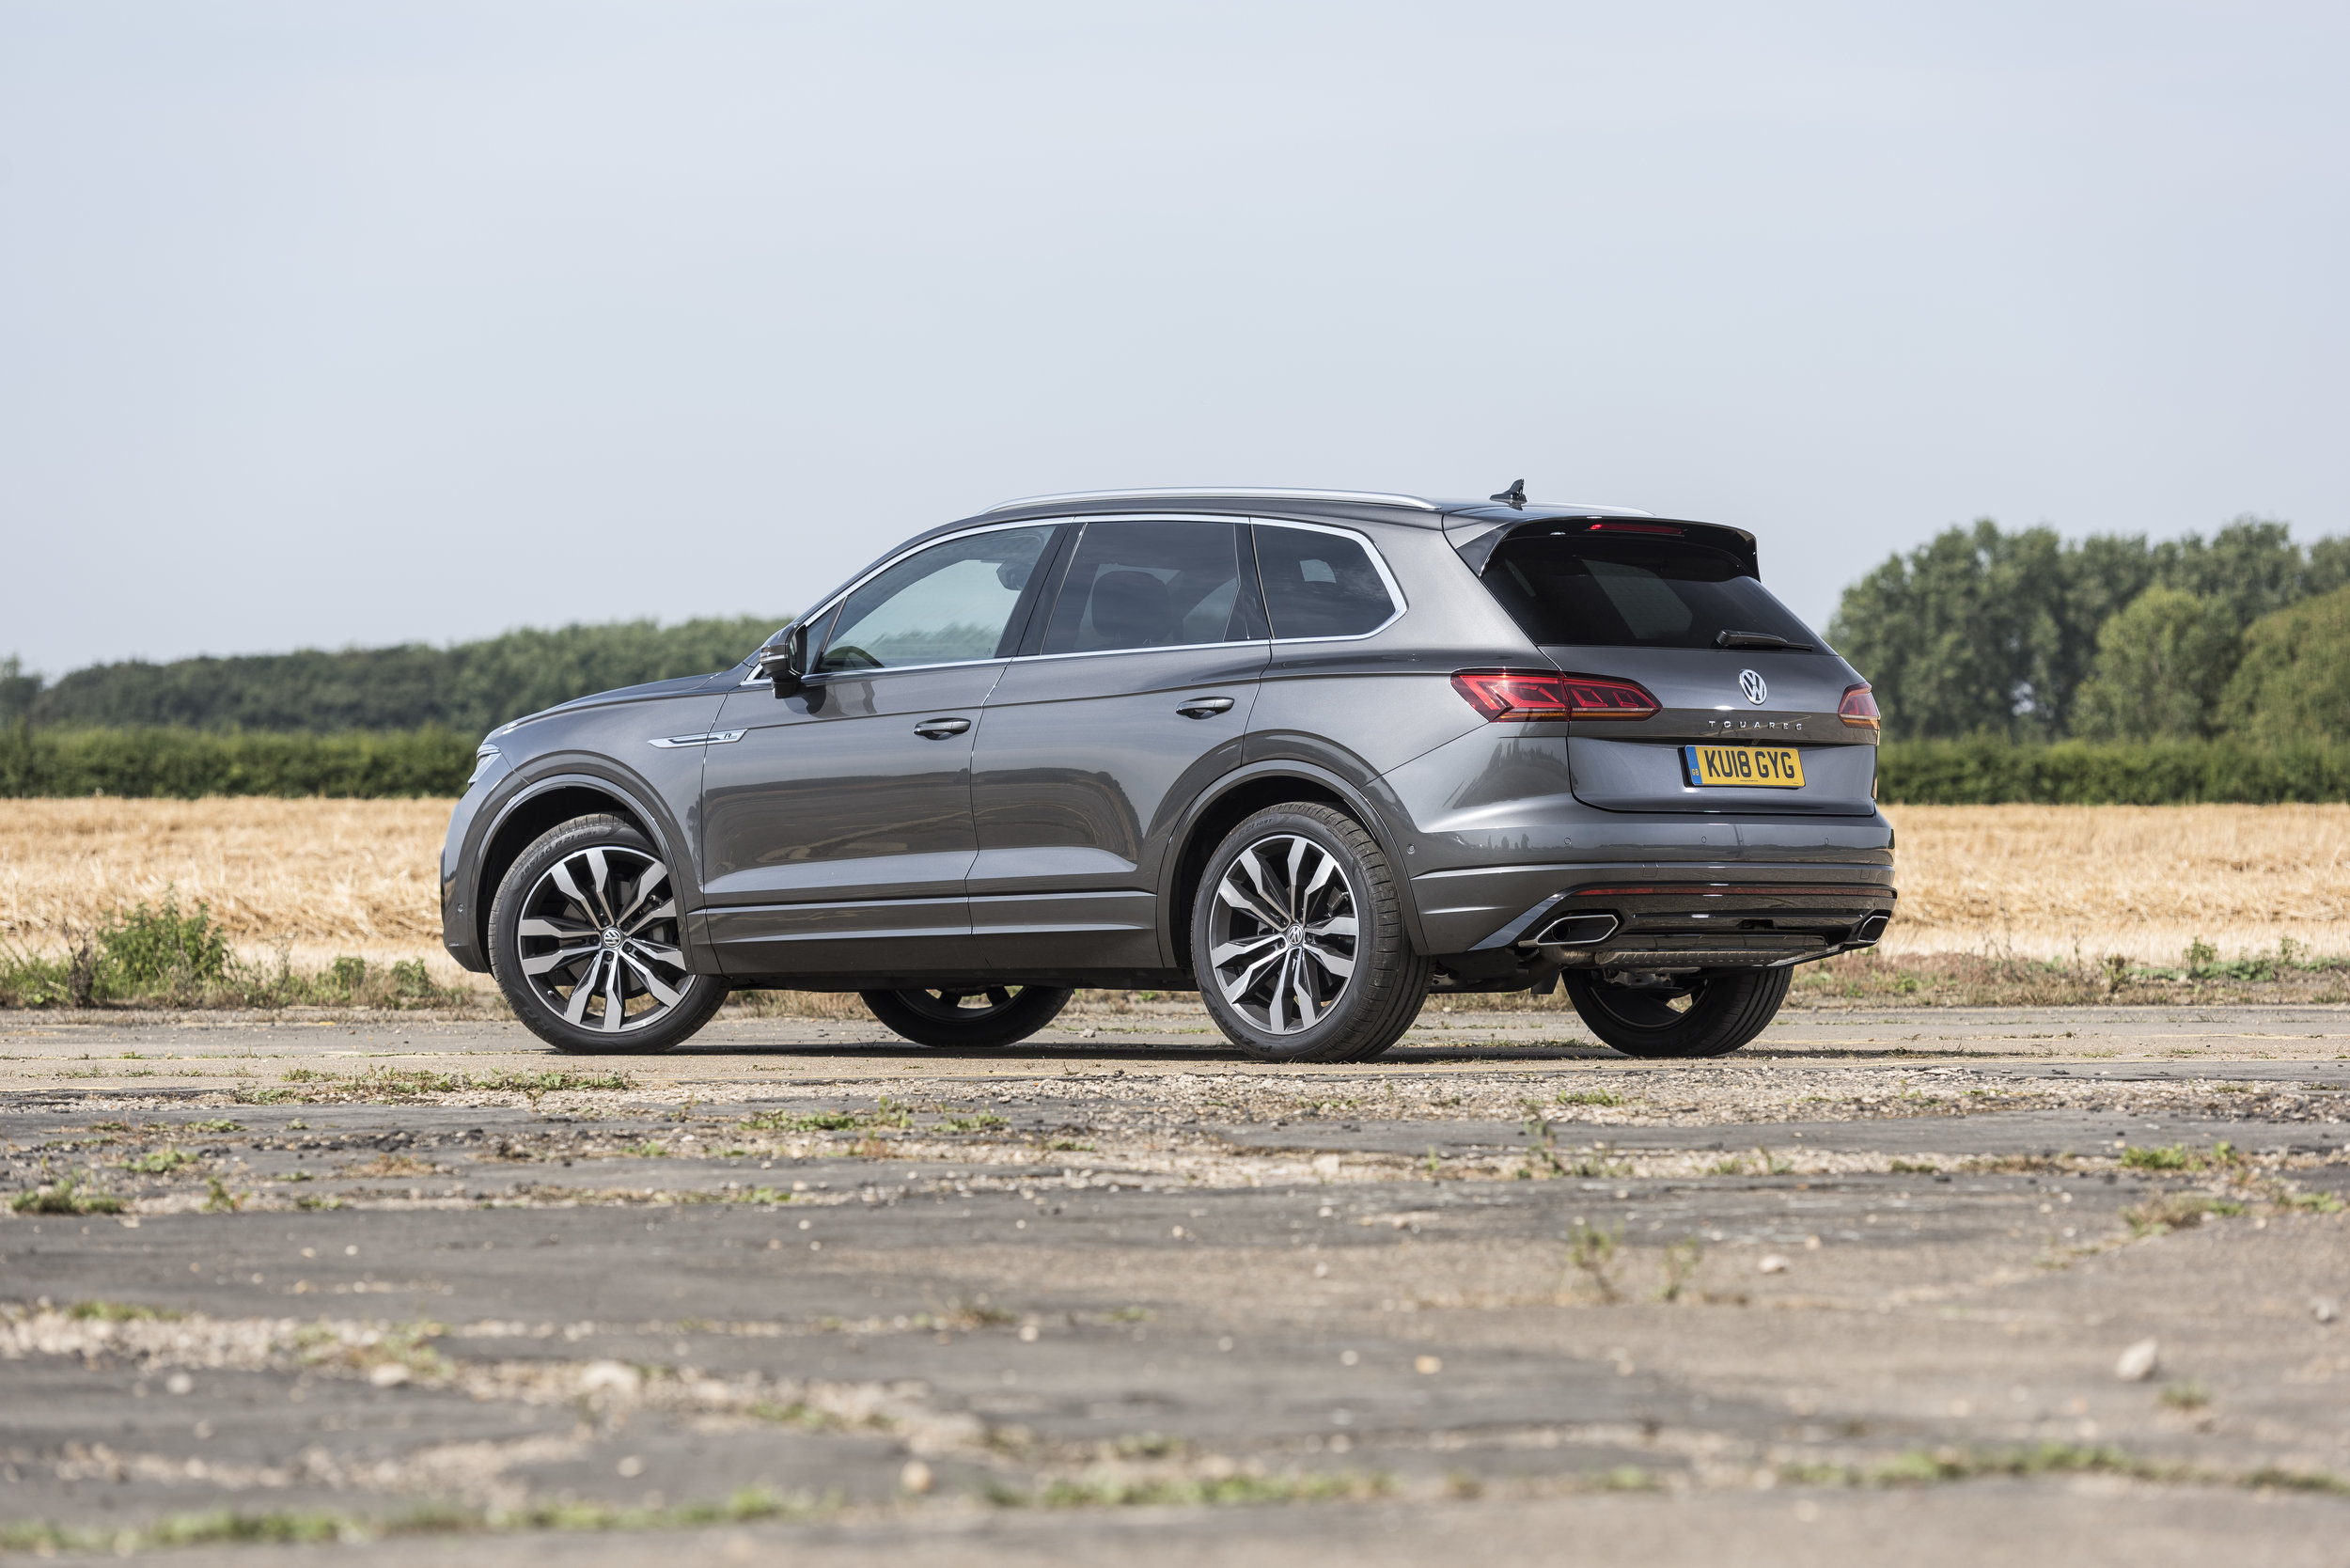 A great all-rounder, the Touareg is equally at home on the school run, or towing a trailer